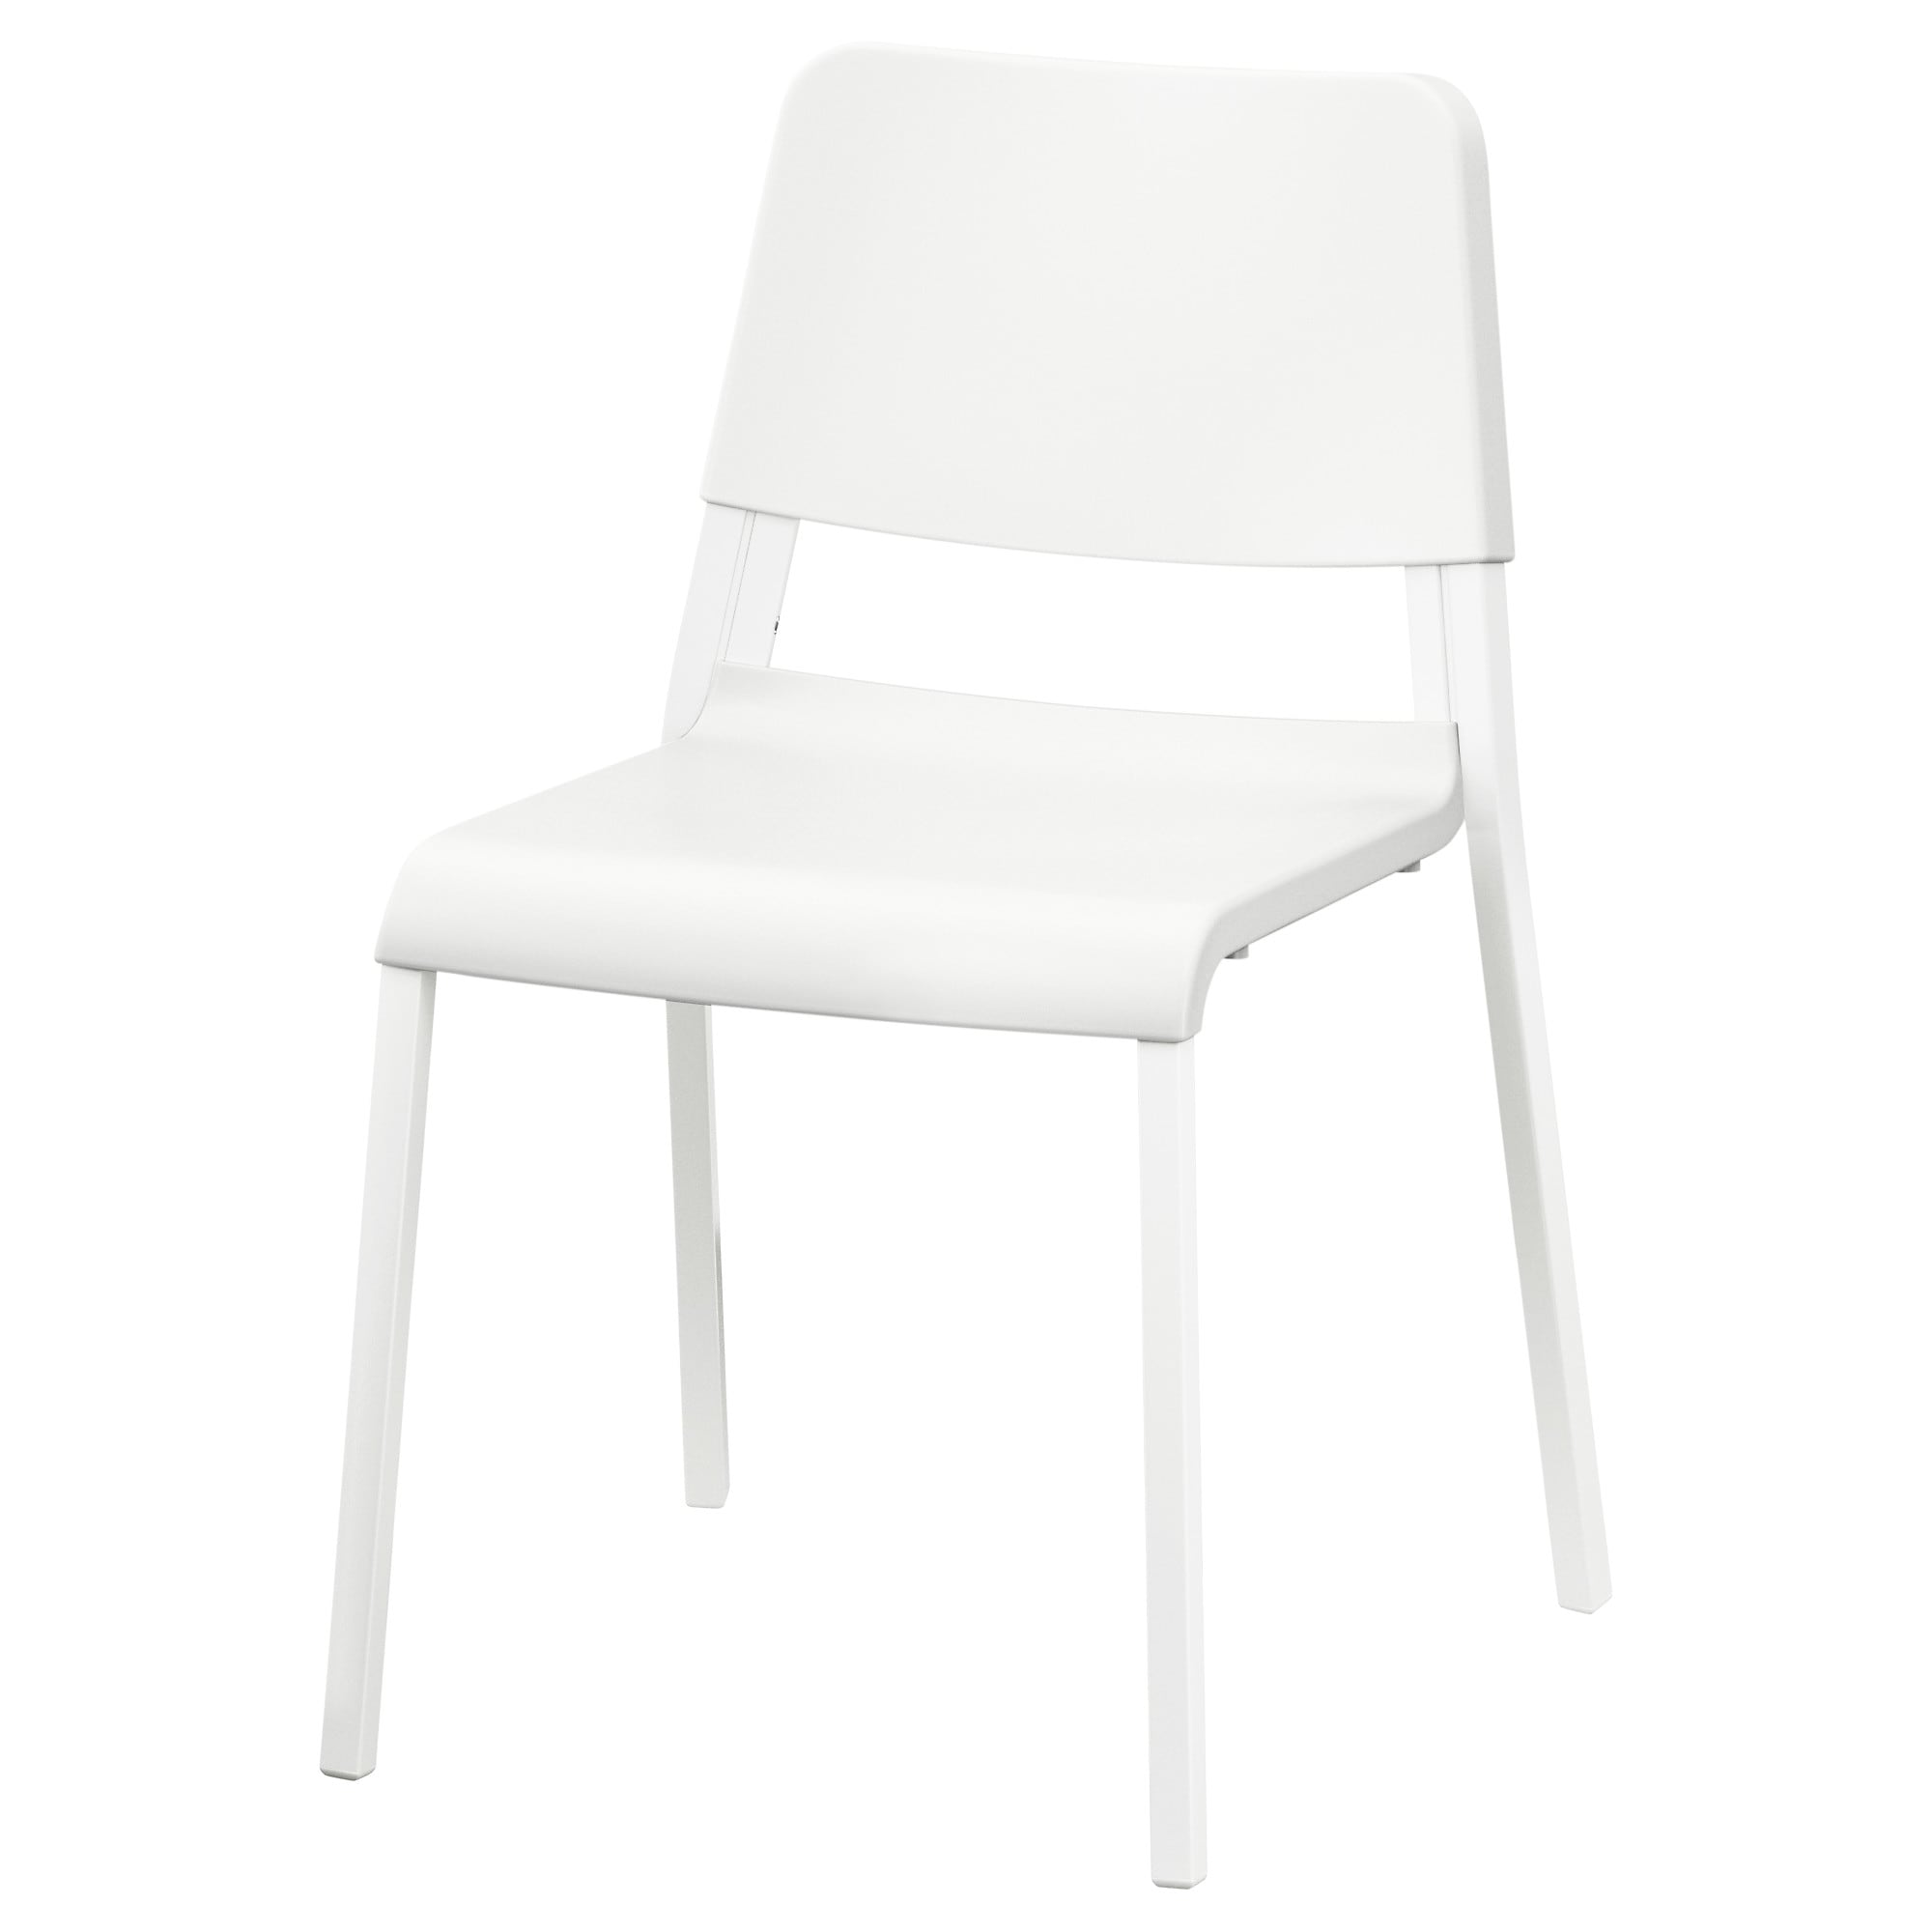 Furniture & Home Furnishings - Find Your Inspiration  Ikea chair